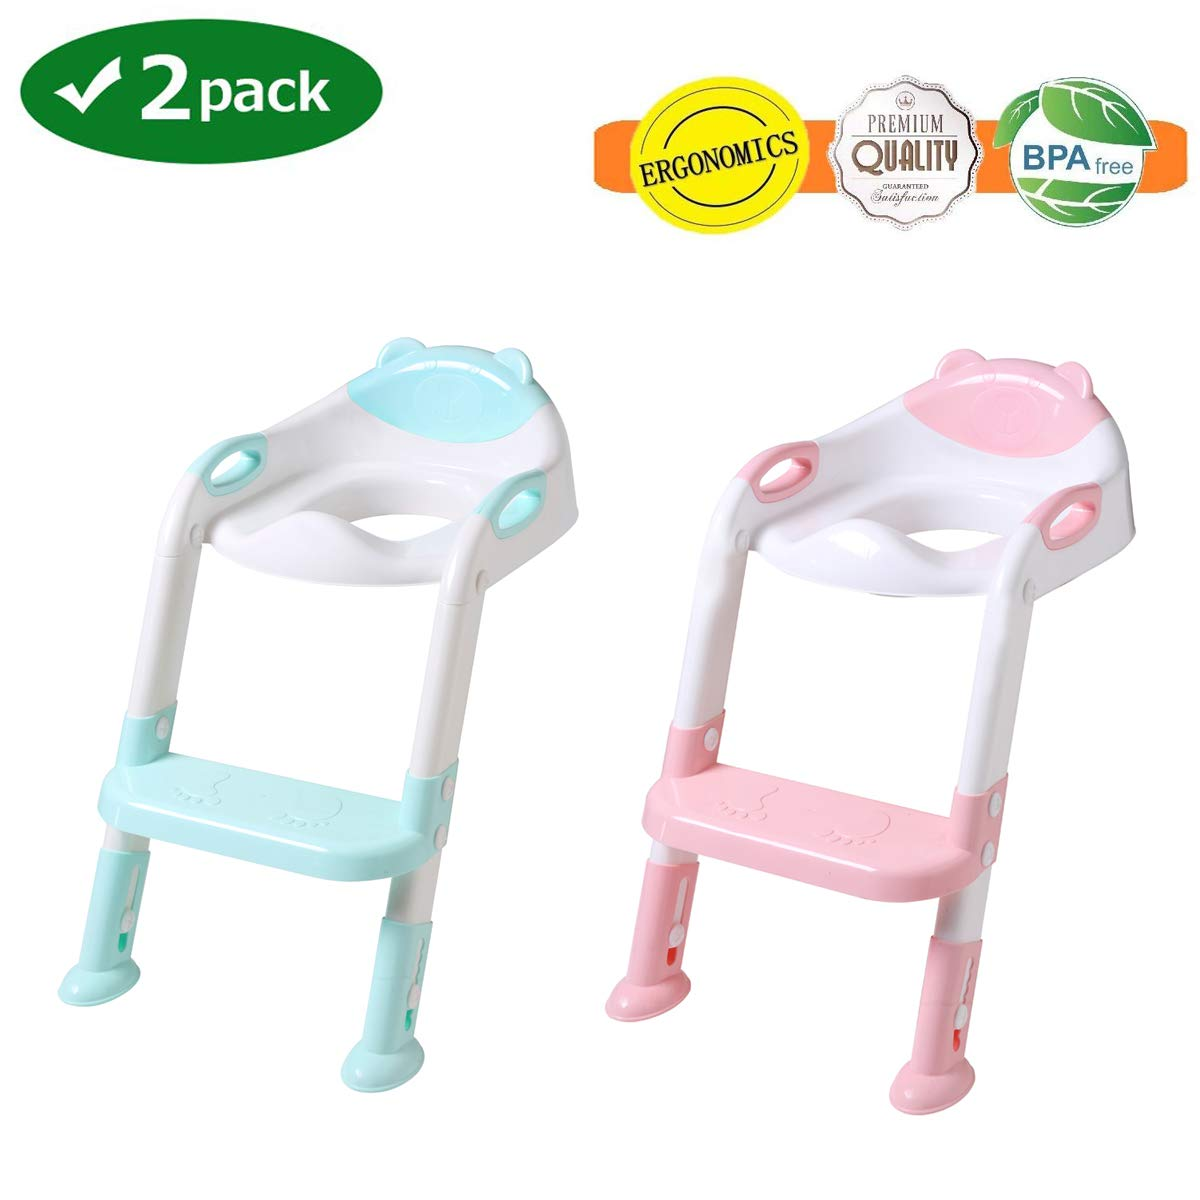 Potty Training Seat with Step Stool Ladder,SKYROKU Potty Training Toilet for Kids Boys Girls Toddlers-Comfortable Safe Potty Seat with Anti-Slip Pads Ladder (2 Pack)